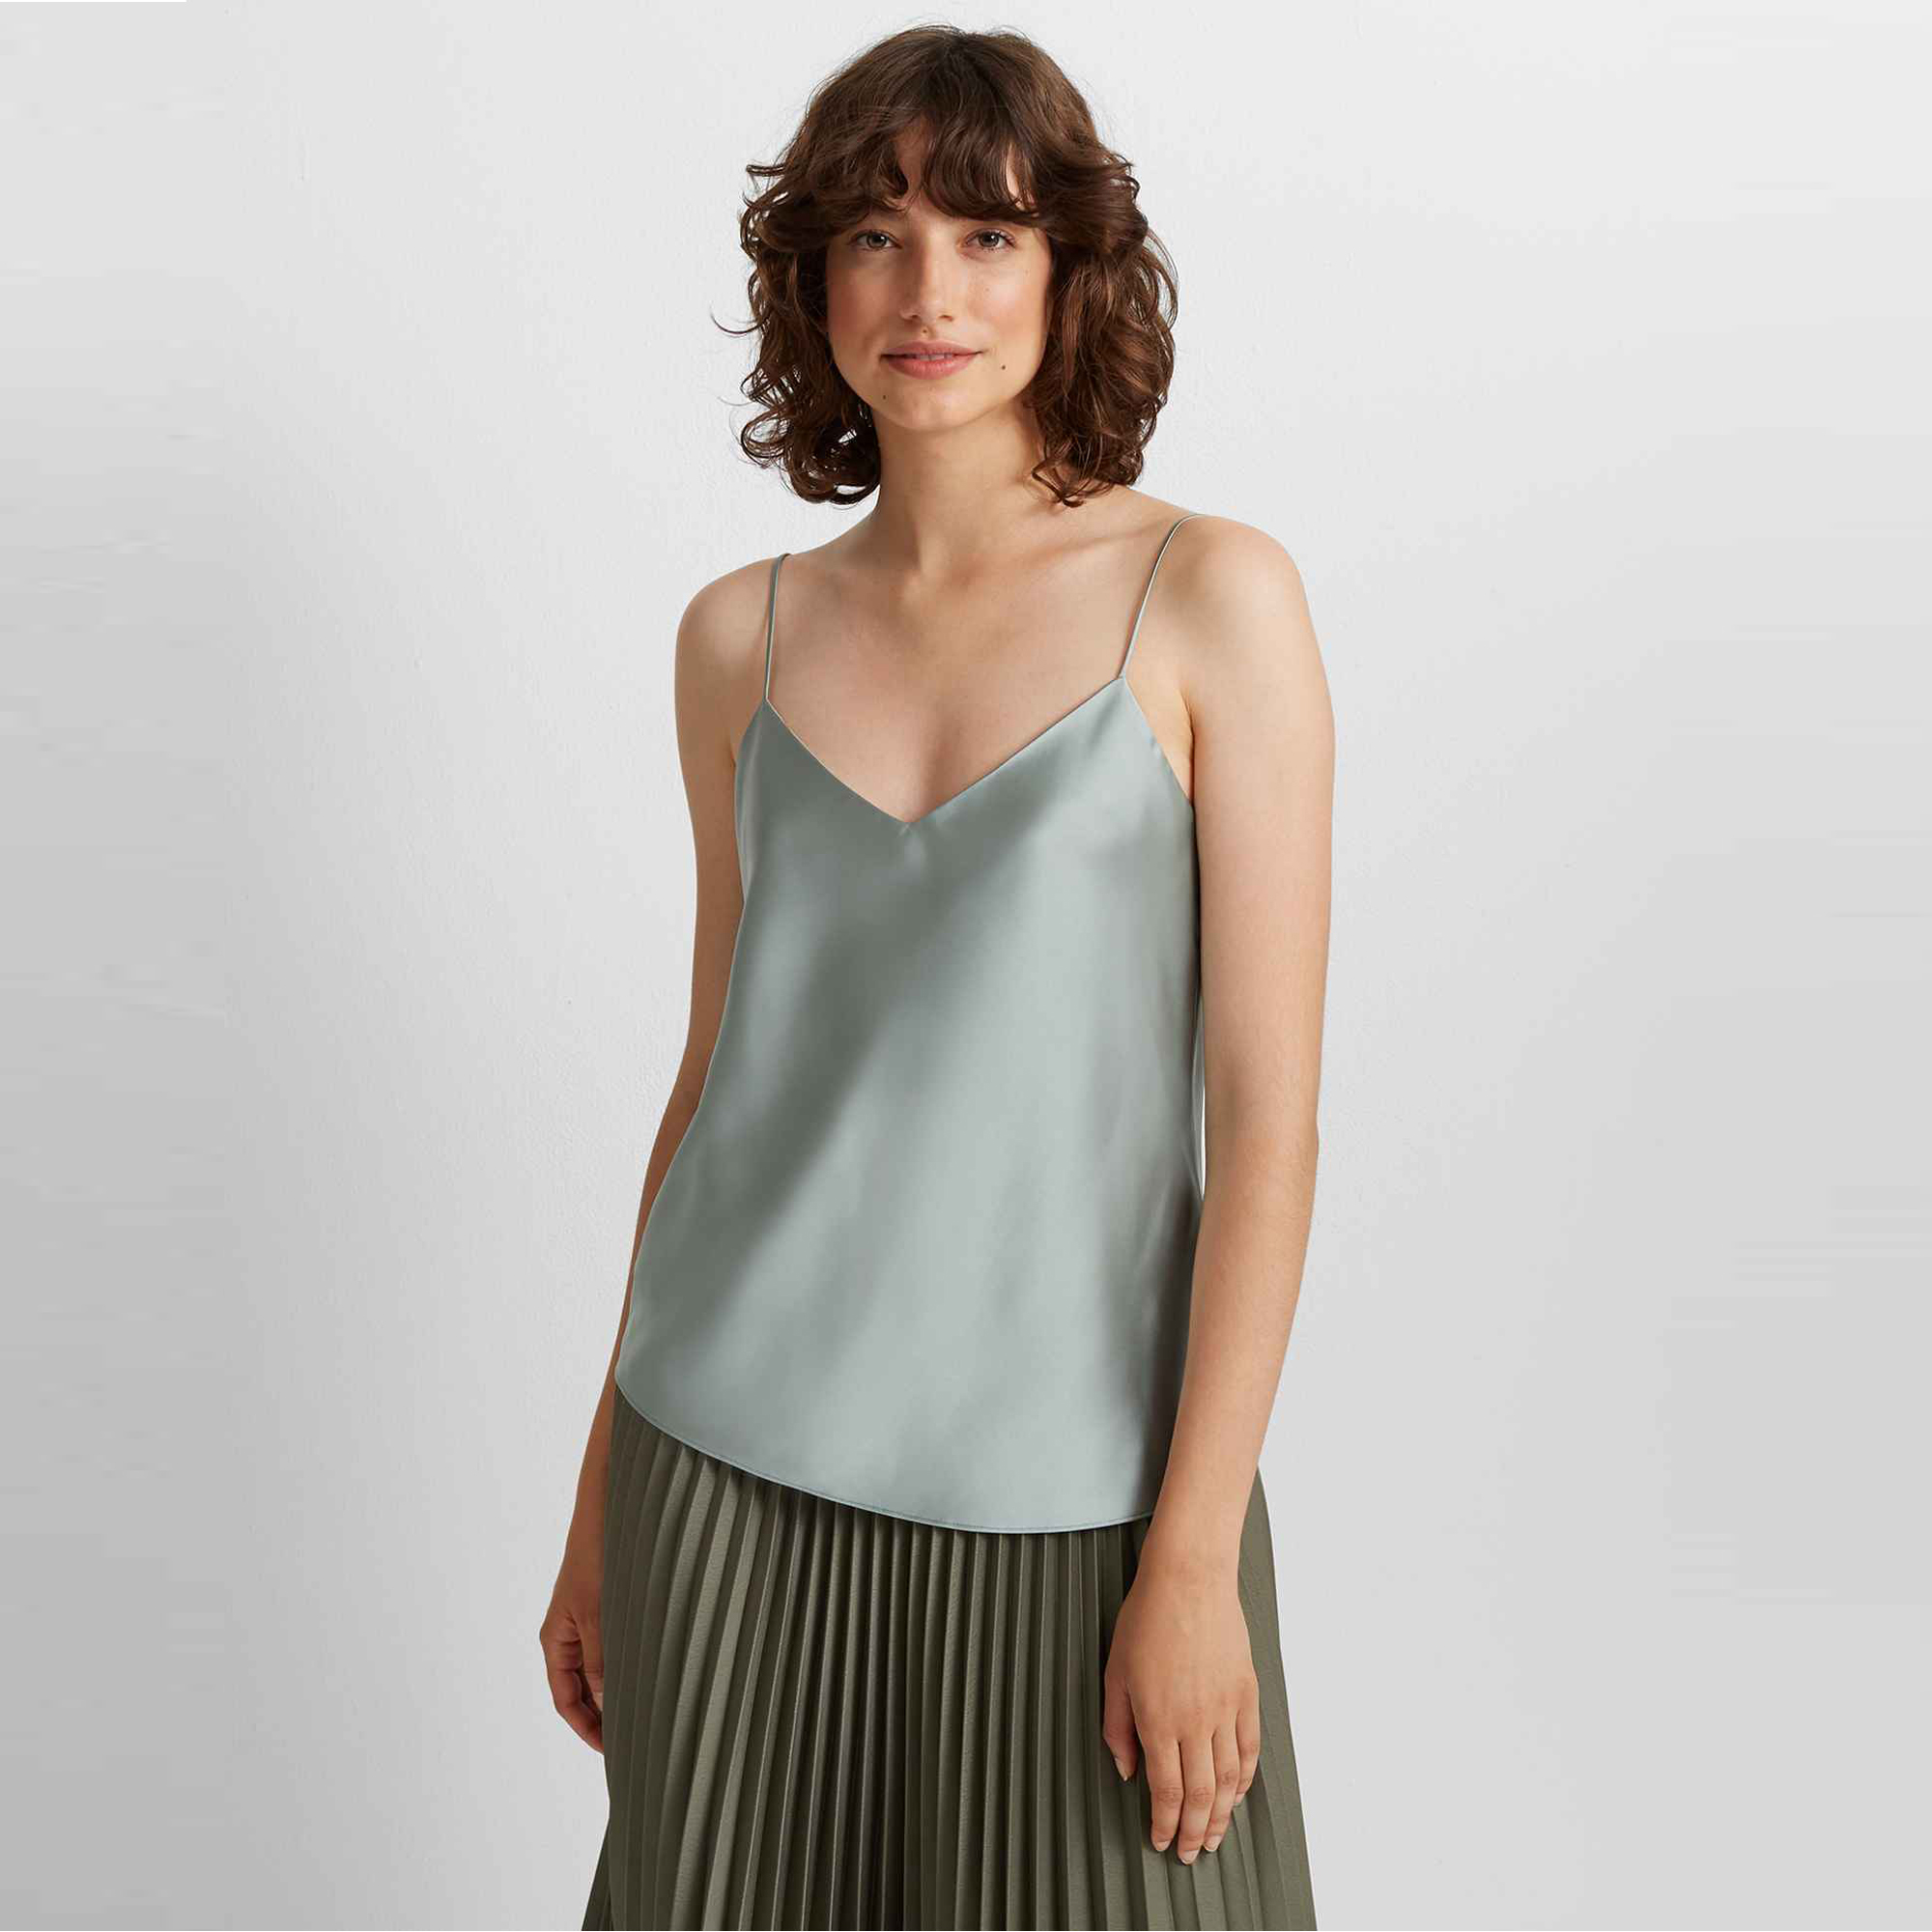 Kora Camisole Light Green.jpg